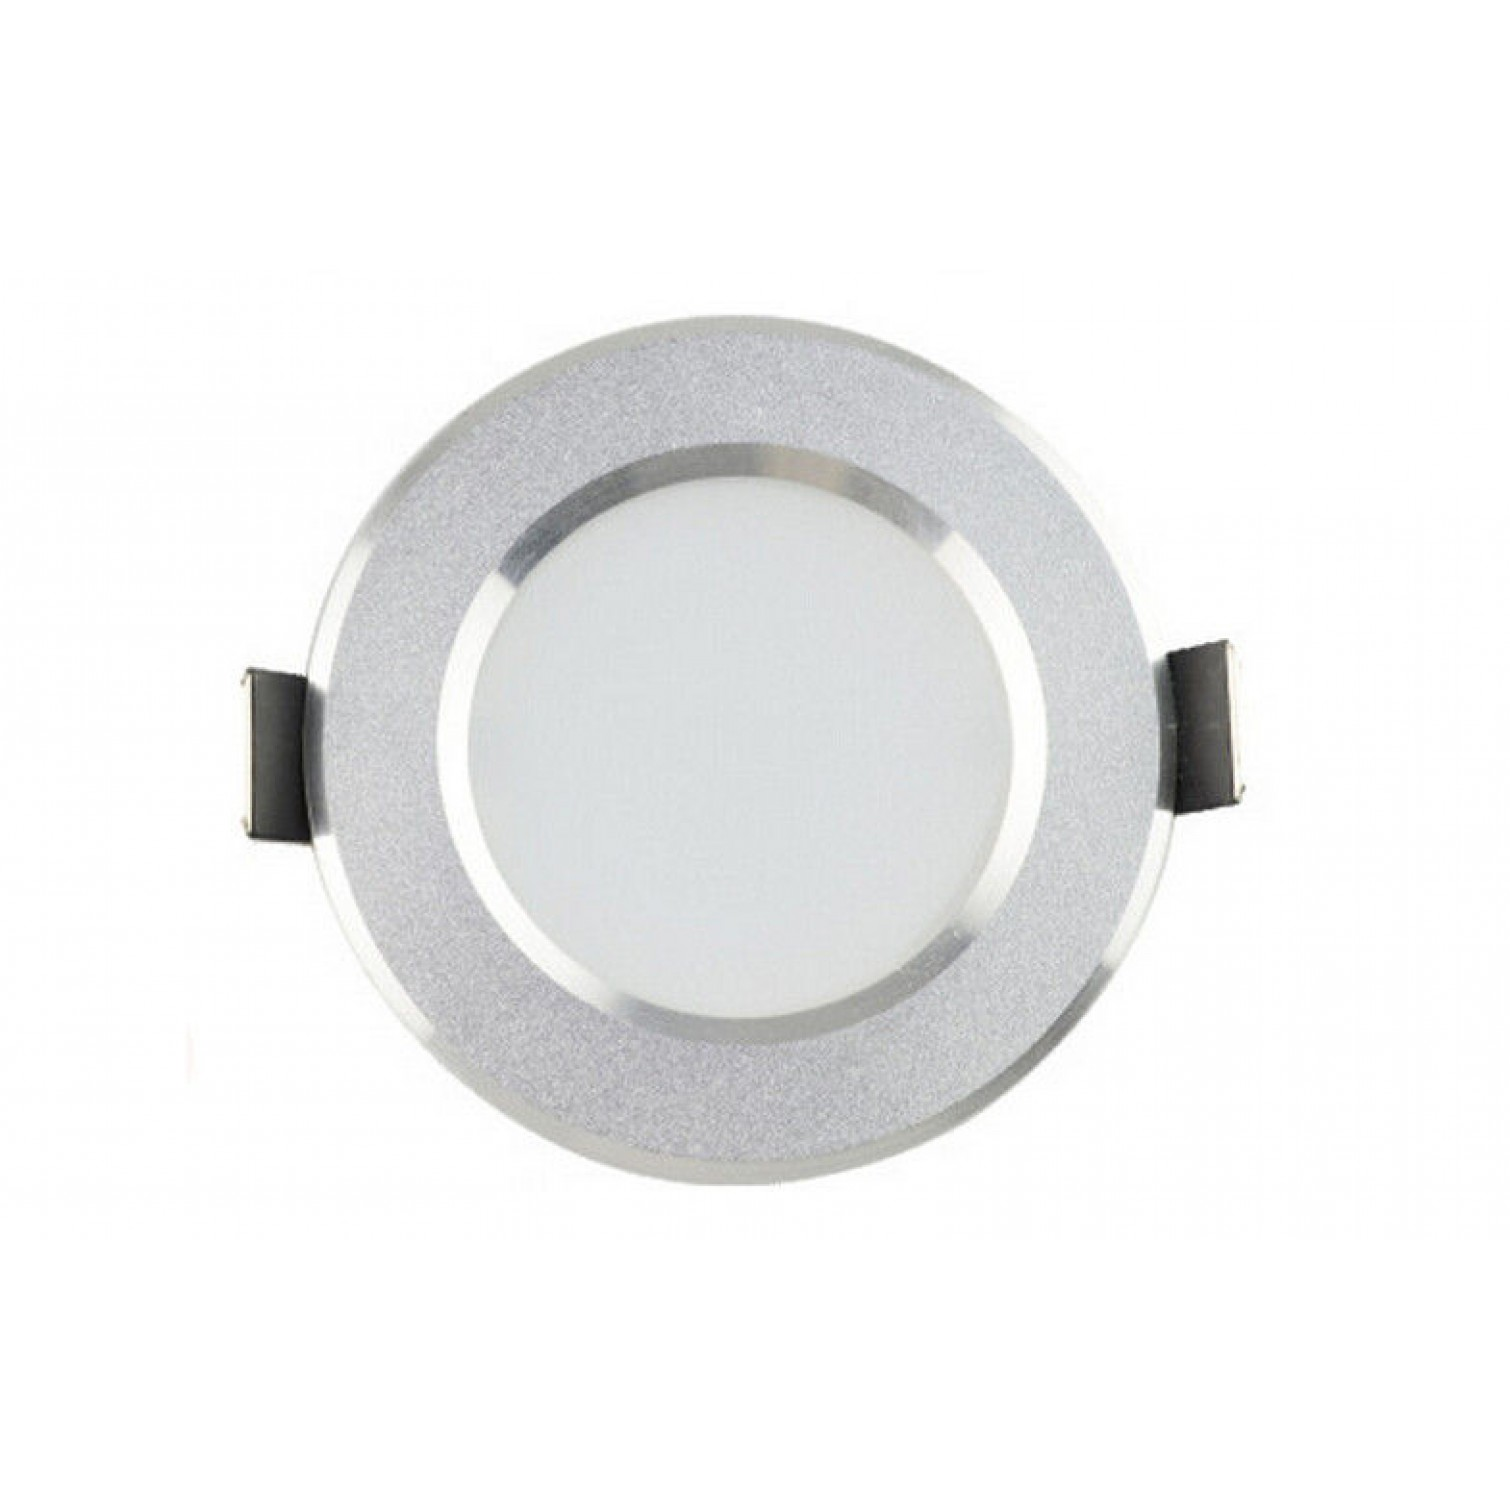 ojo-de-buey-led-12w-borde-blanco-110v-luz-calida-dimeable-4plgs-diametro